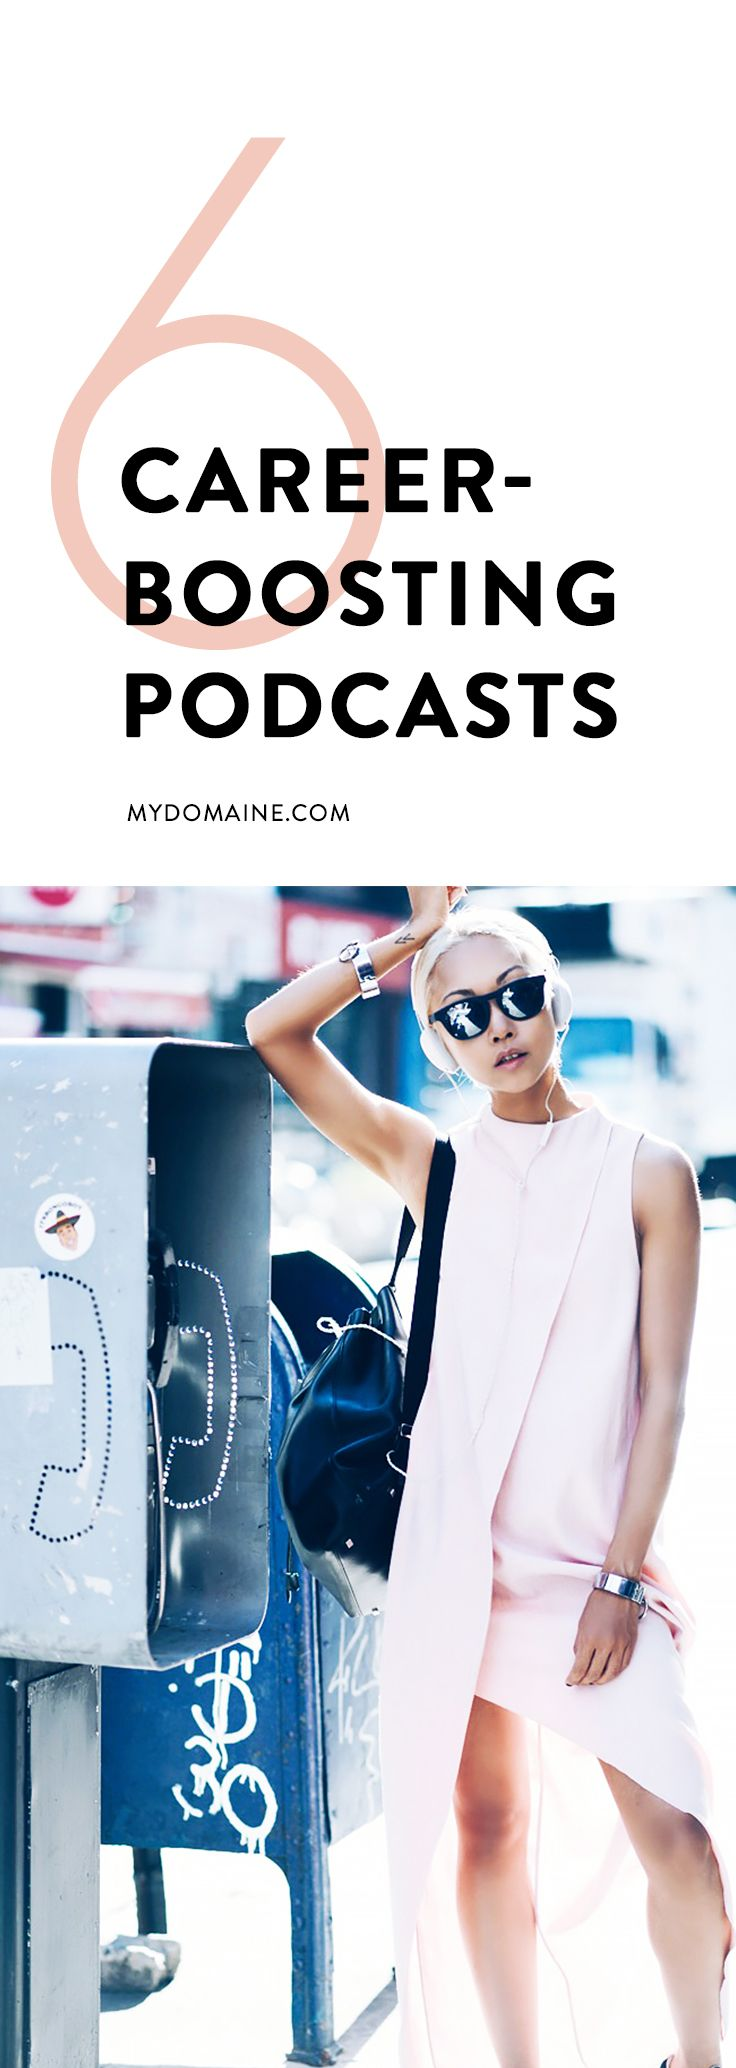 listen up the 6 best podcasts to help you win at life we podcasts that will boost your career want to travel the world and get your dream job